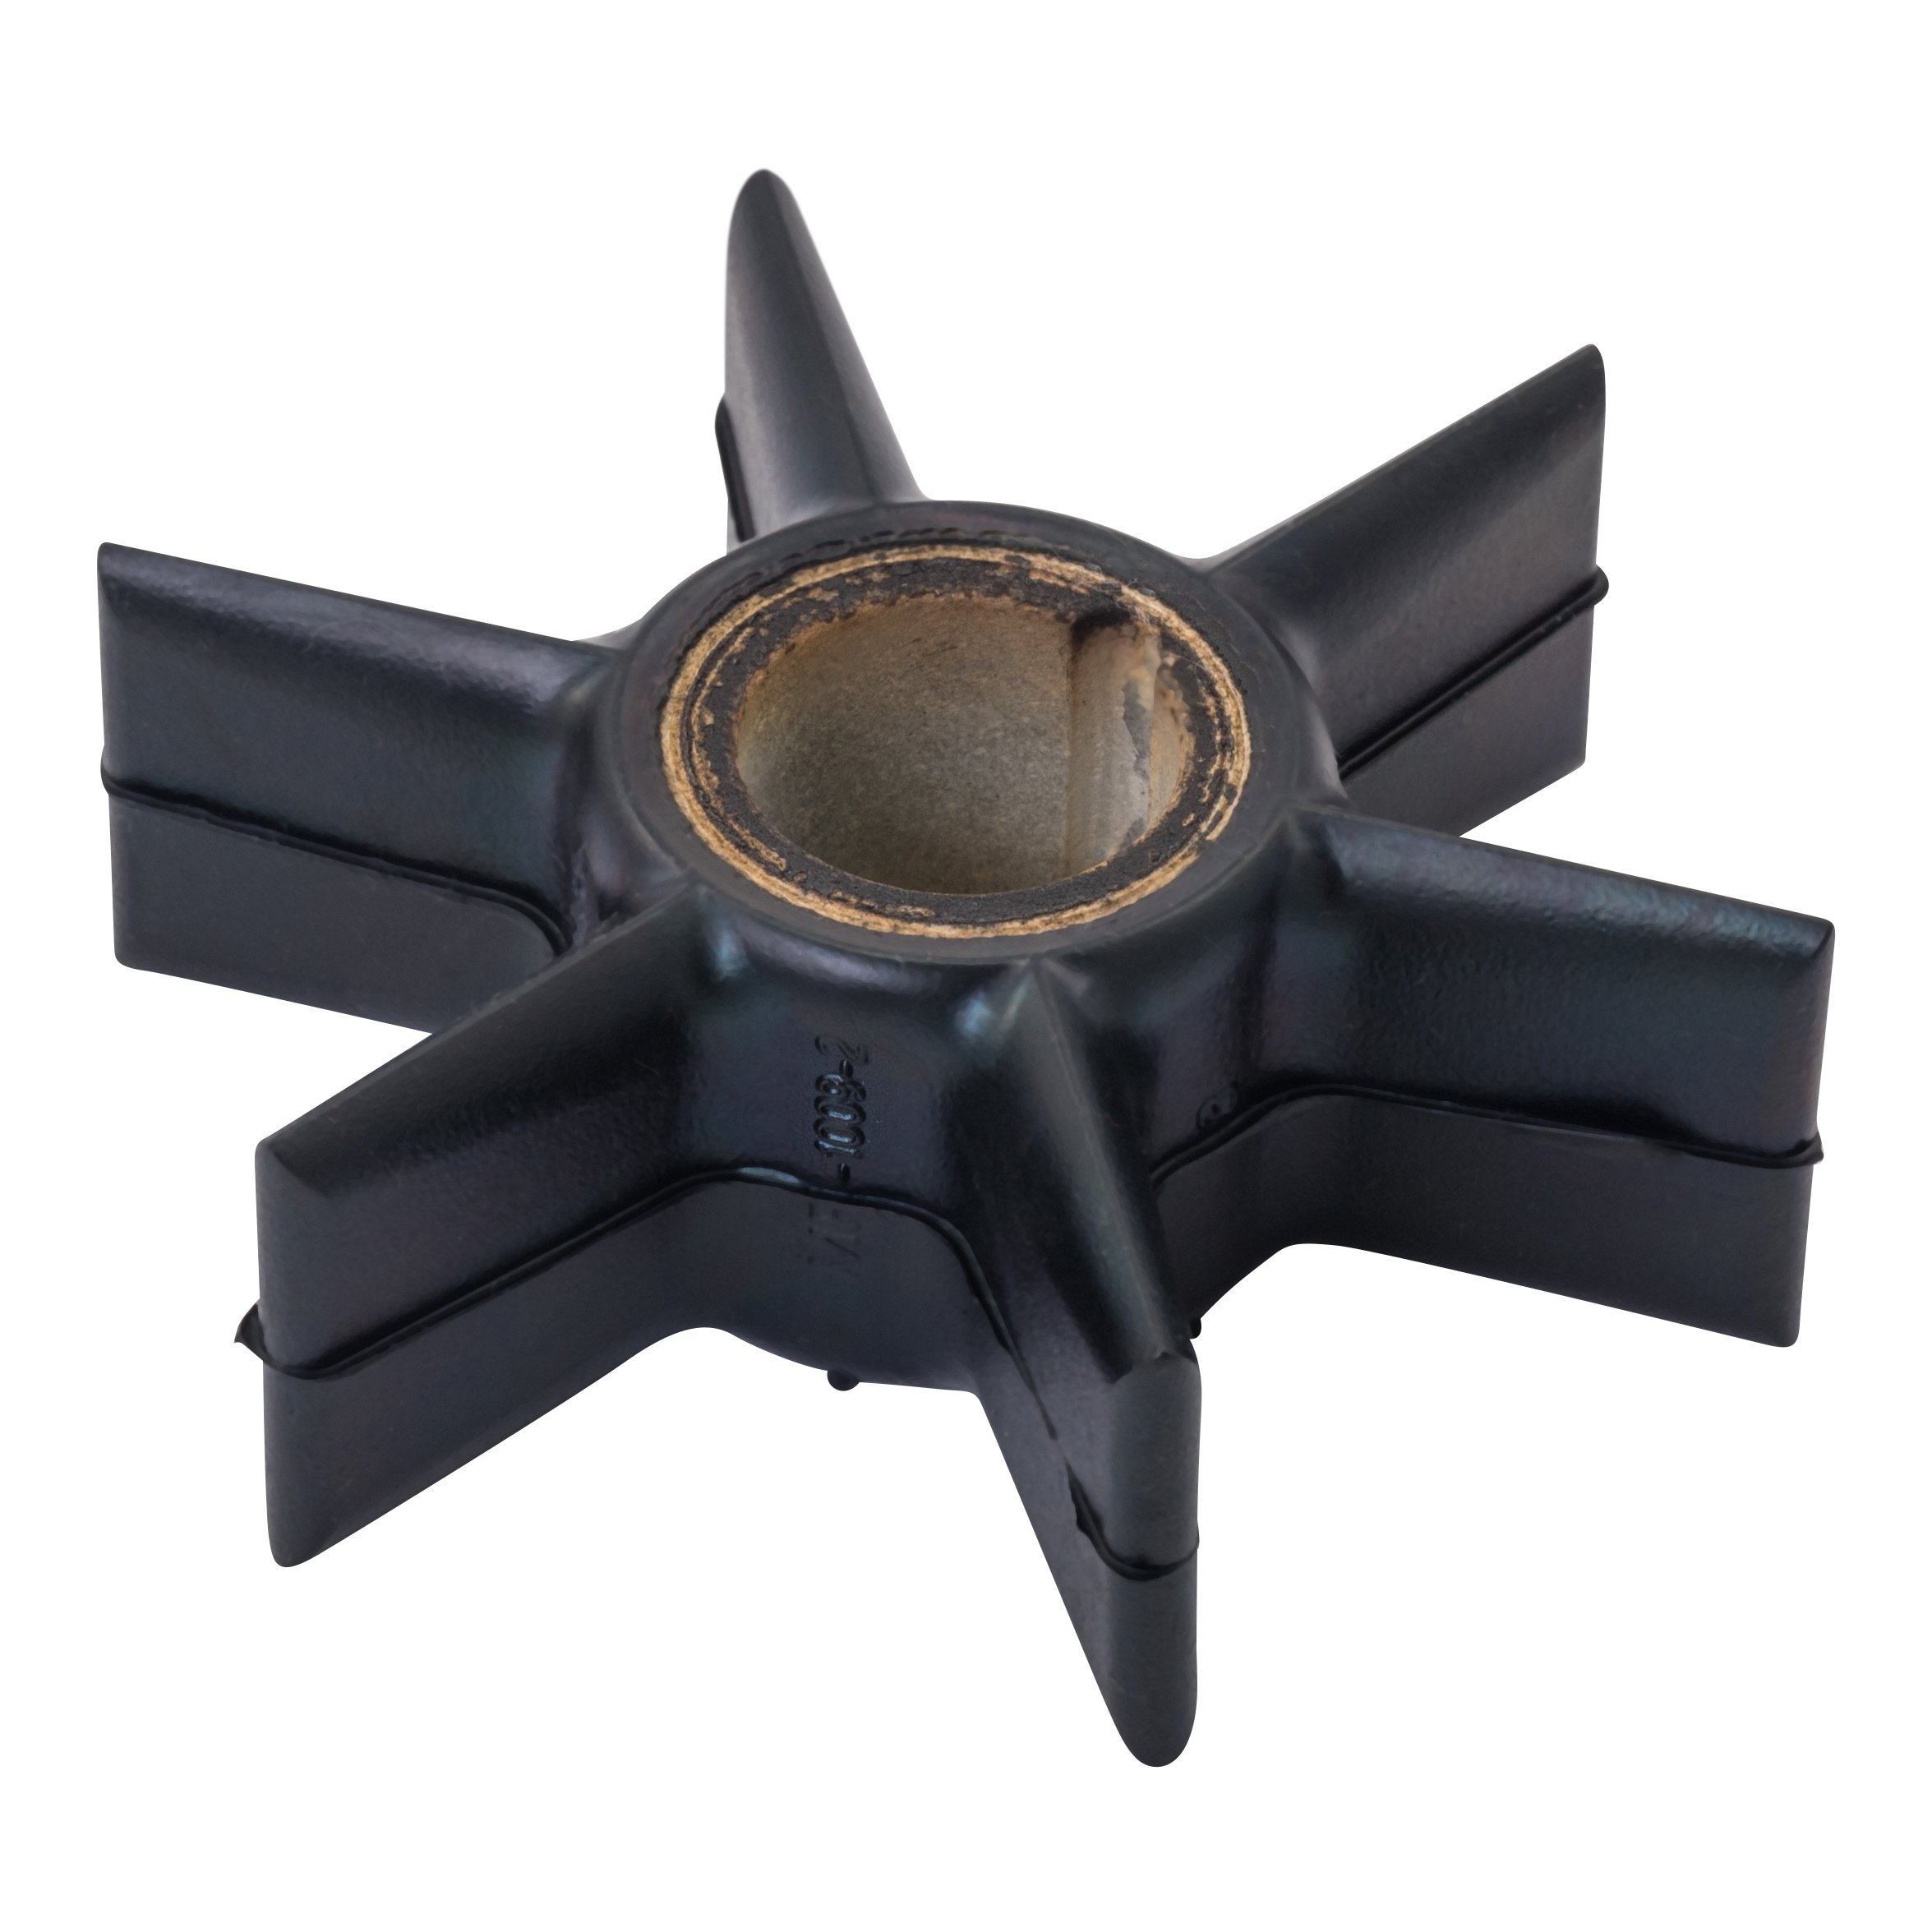 QuickSilver 19453T Water Pump Impeller - Mercury 3-Cylinder 40 Horsepower 4-Stroke Outboards